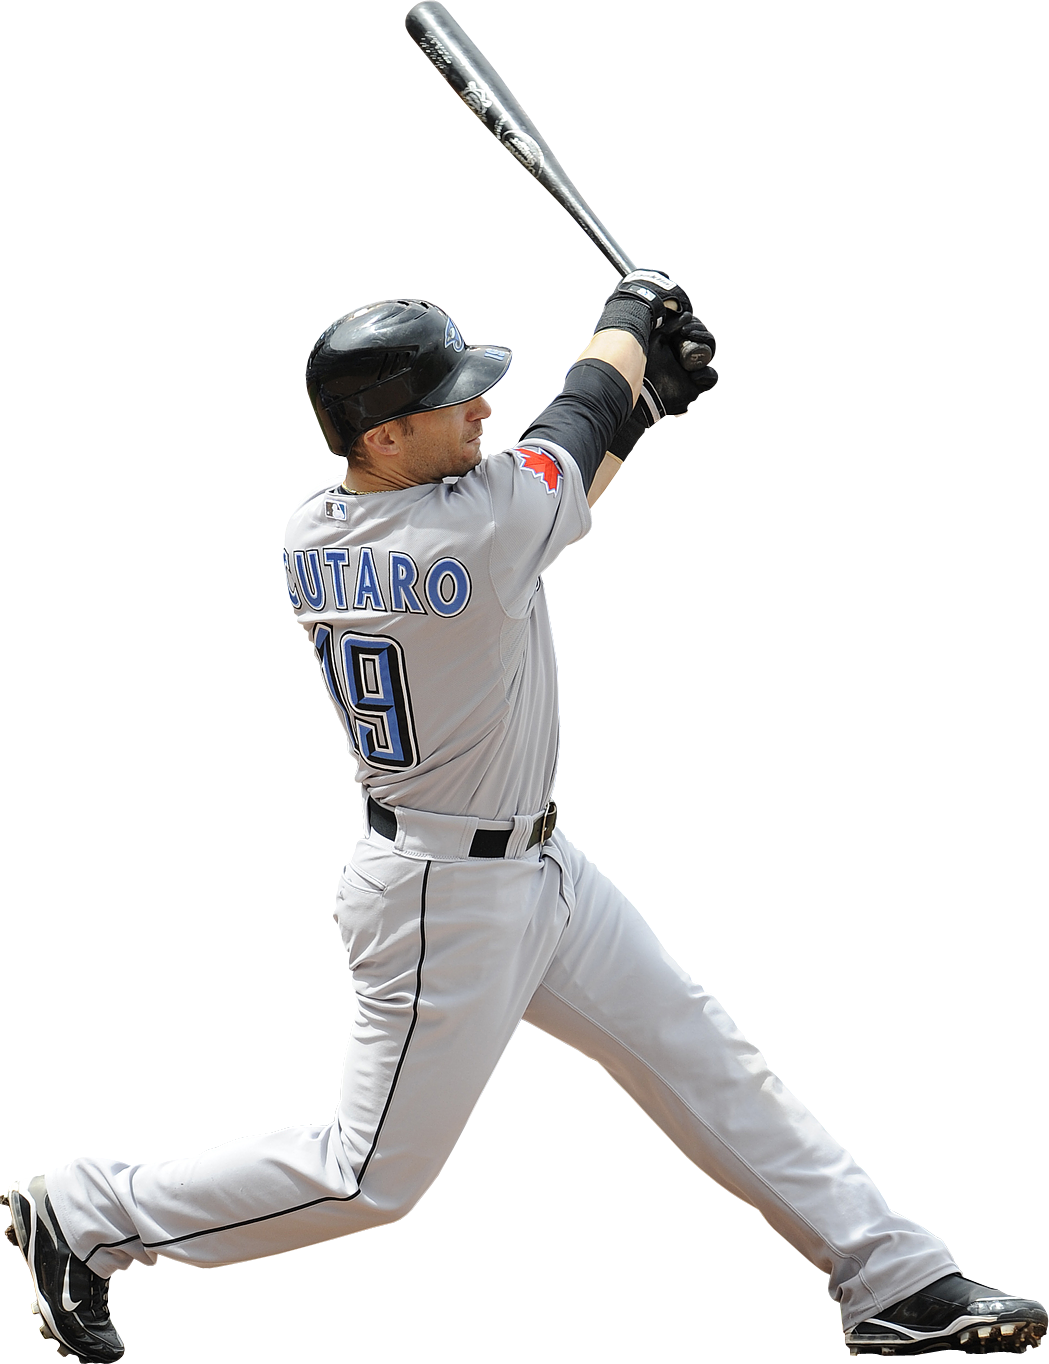 Baseball player swinging a bat clipart clipart free library Baseball PNG images free download, baseball ball PNG, baseball bat PNG clipart free library